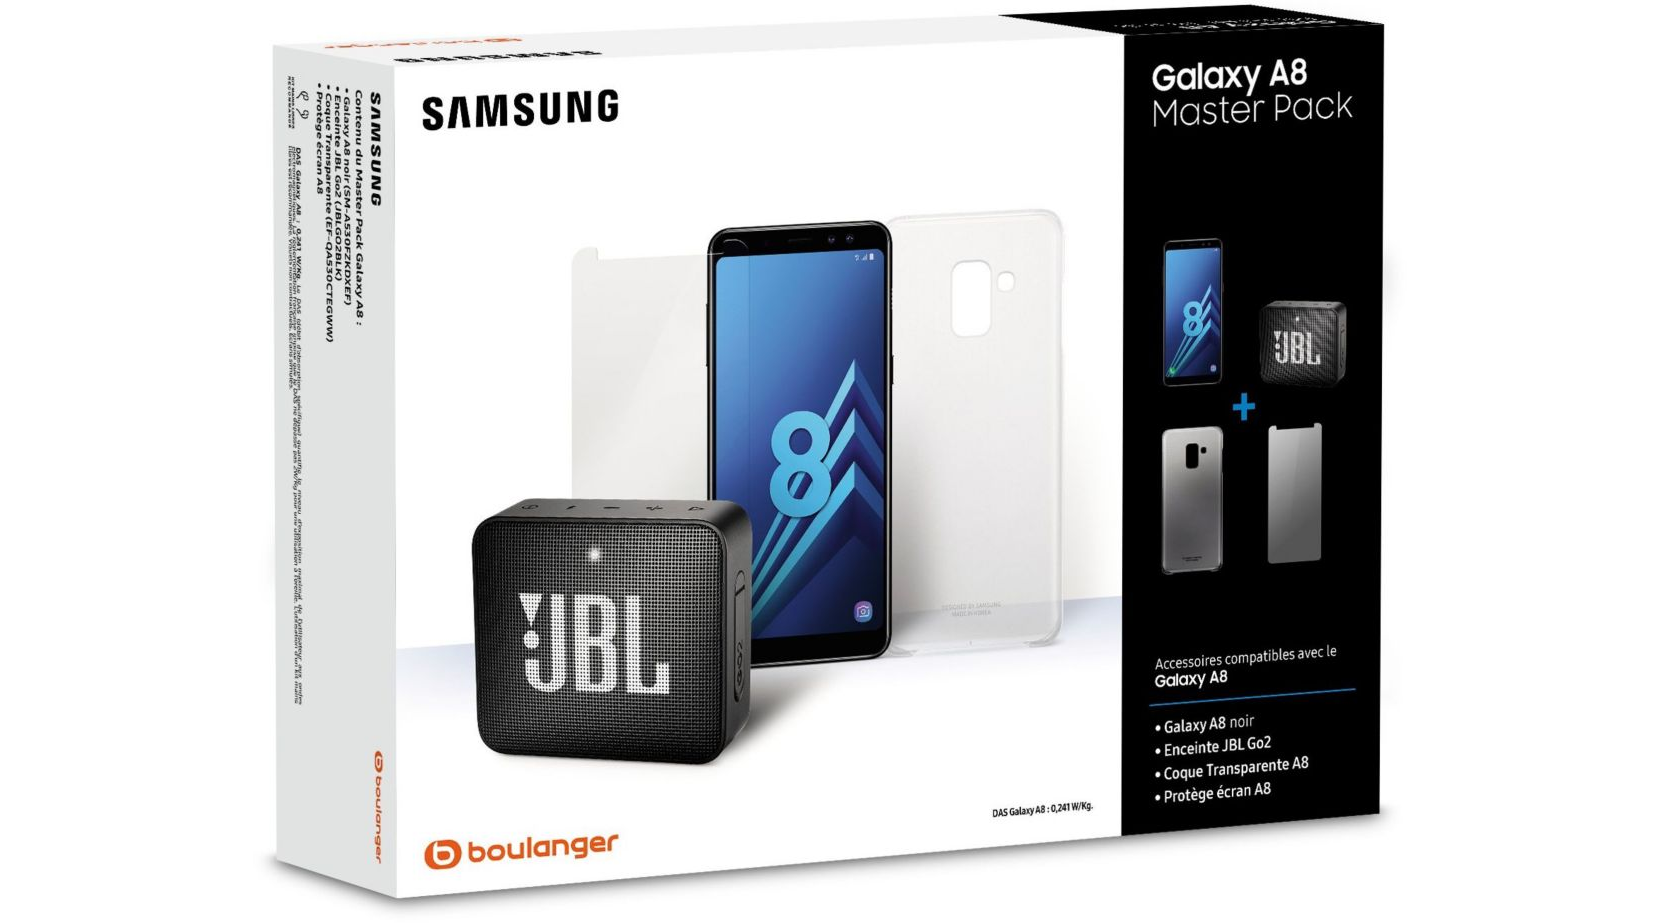 bon plan pack samsung a8 enceinte jbl go 249 au lieu de 369. Black Bedroom Furniture Sets. Home Design Ideas